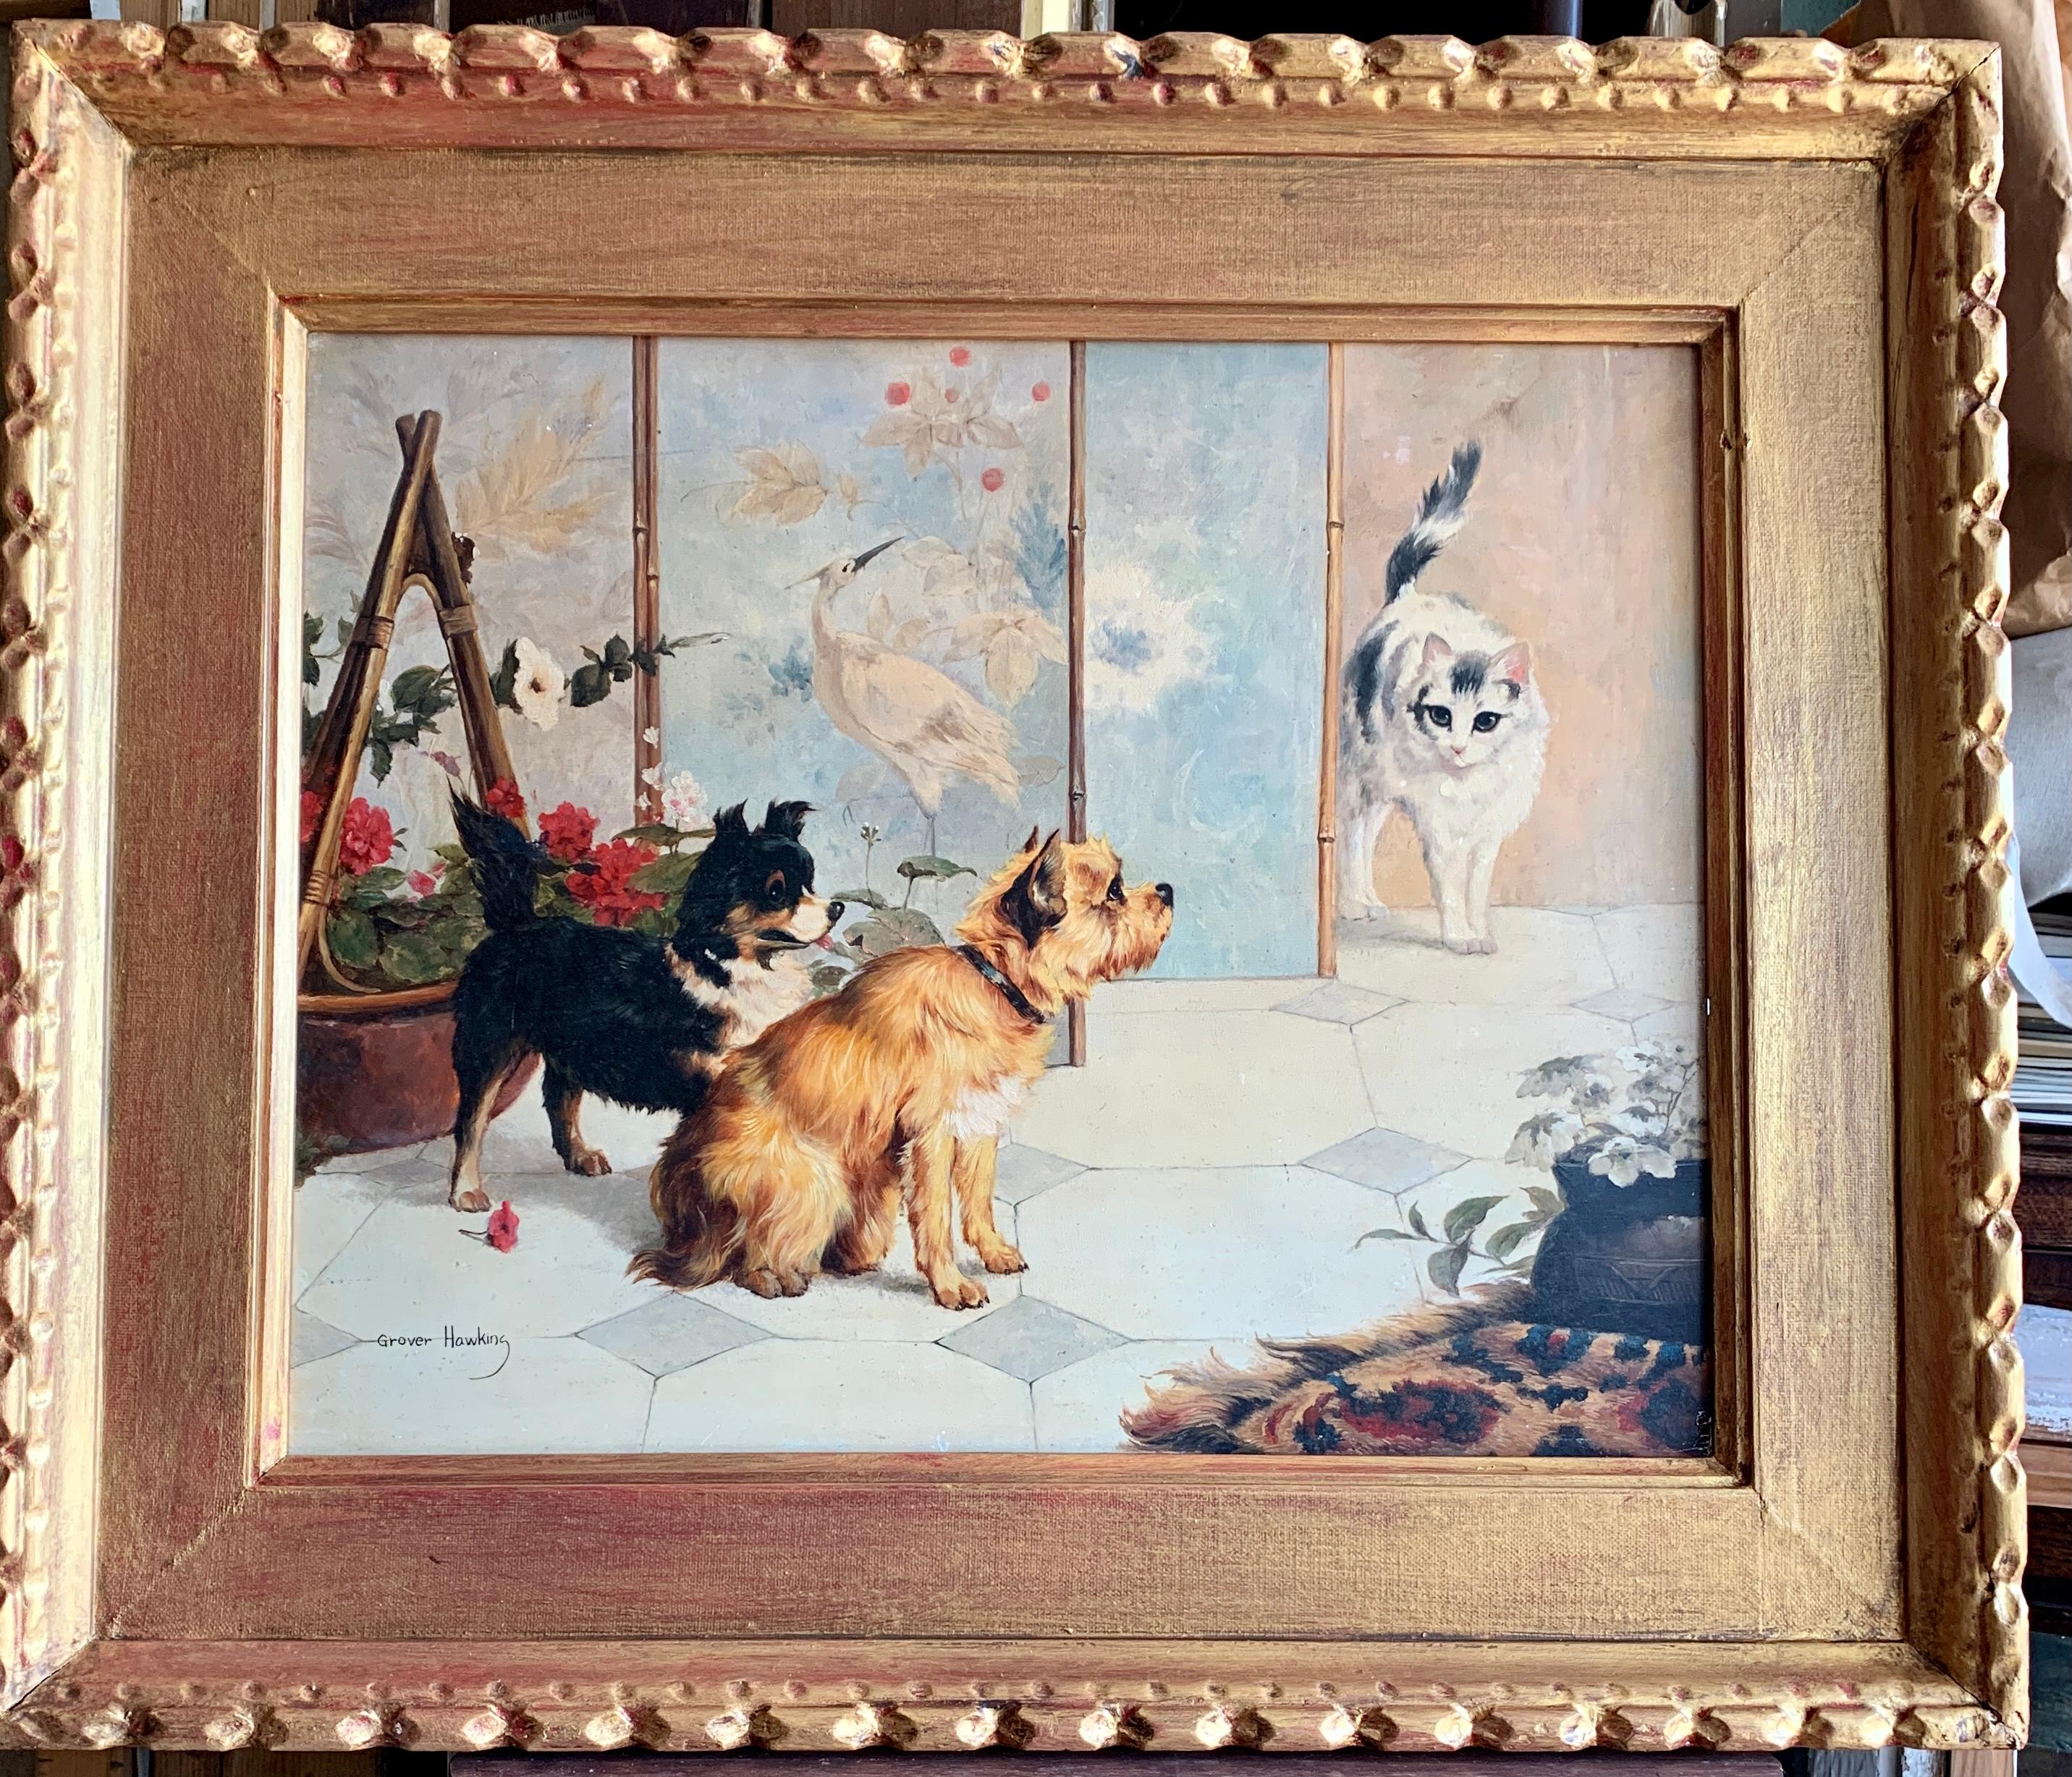 Two Dogs in a Japanese inspired interior surprising a cat